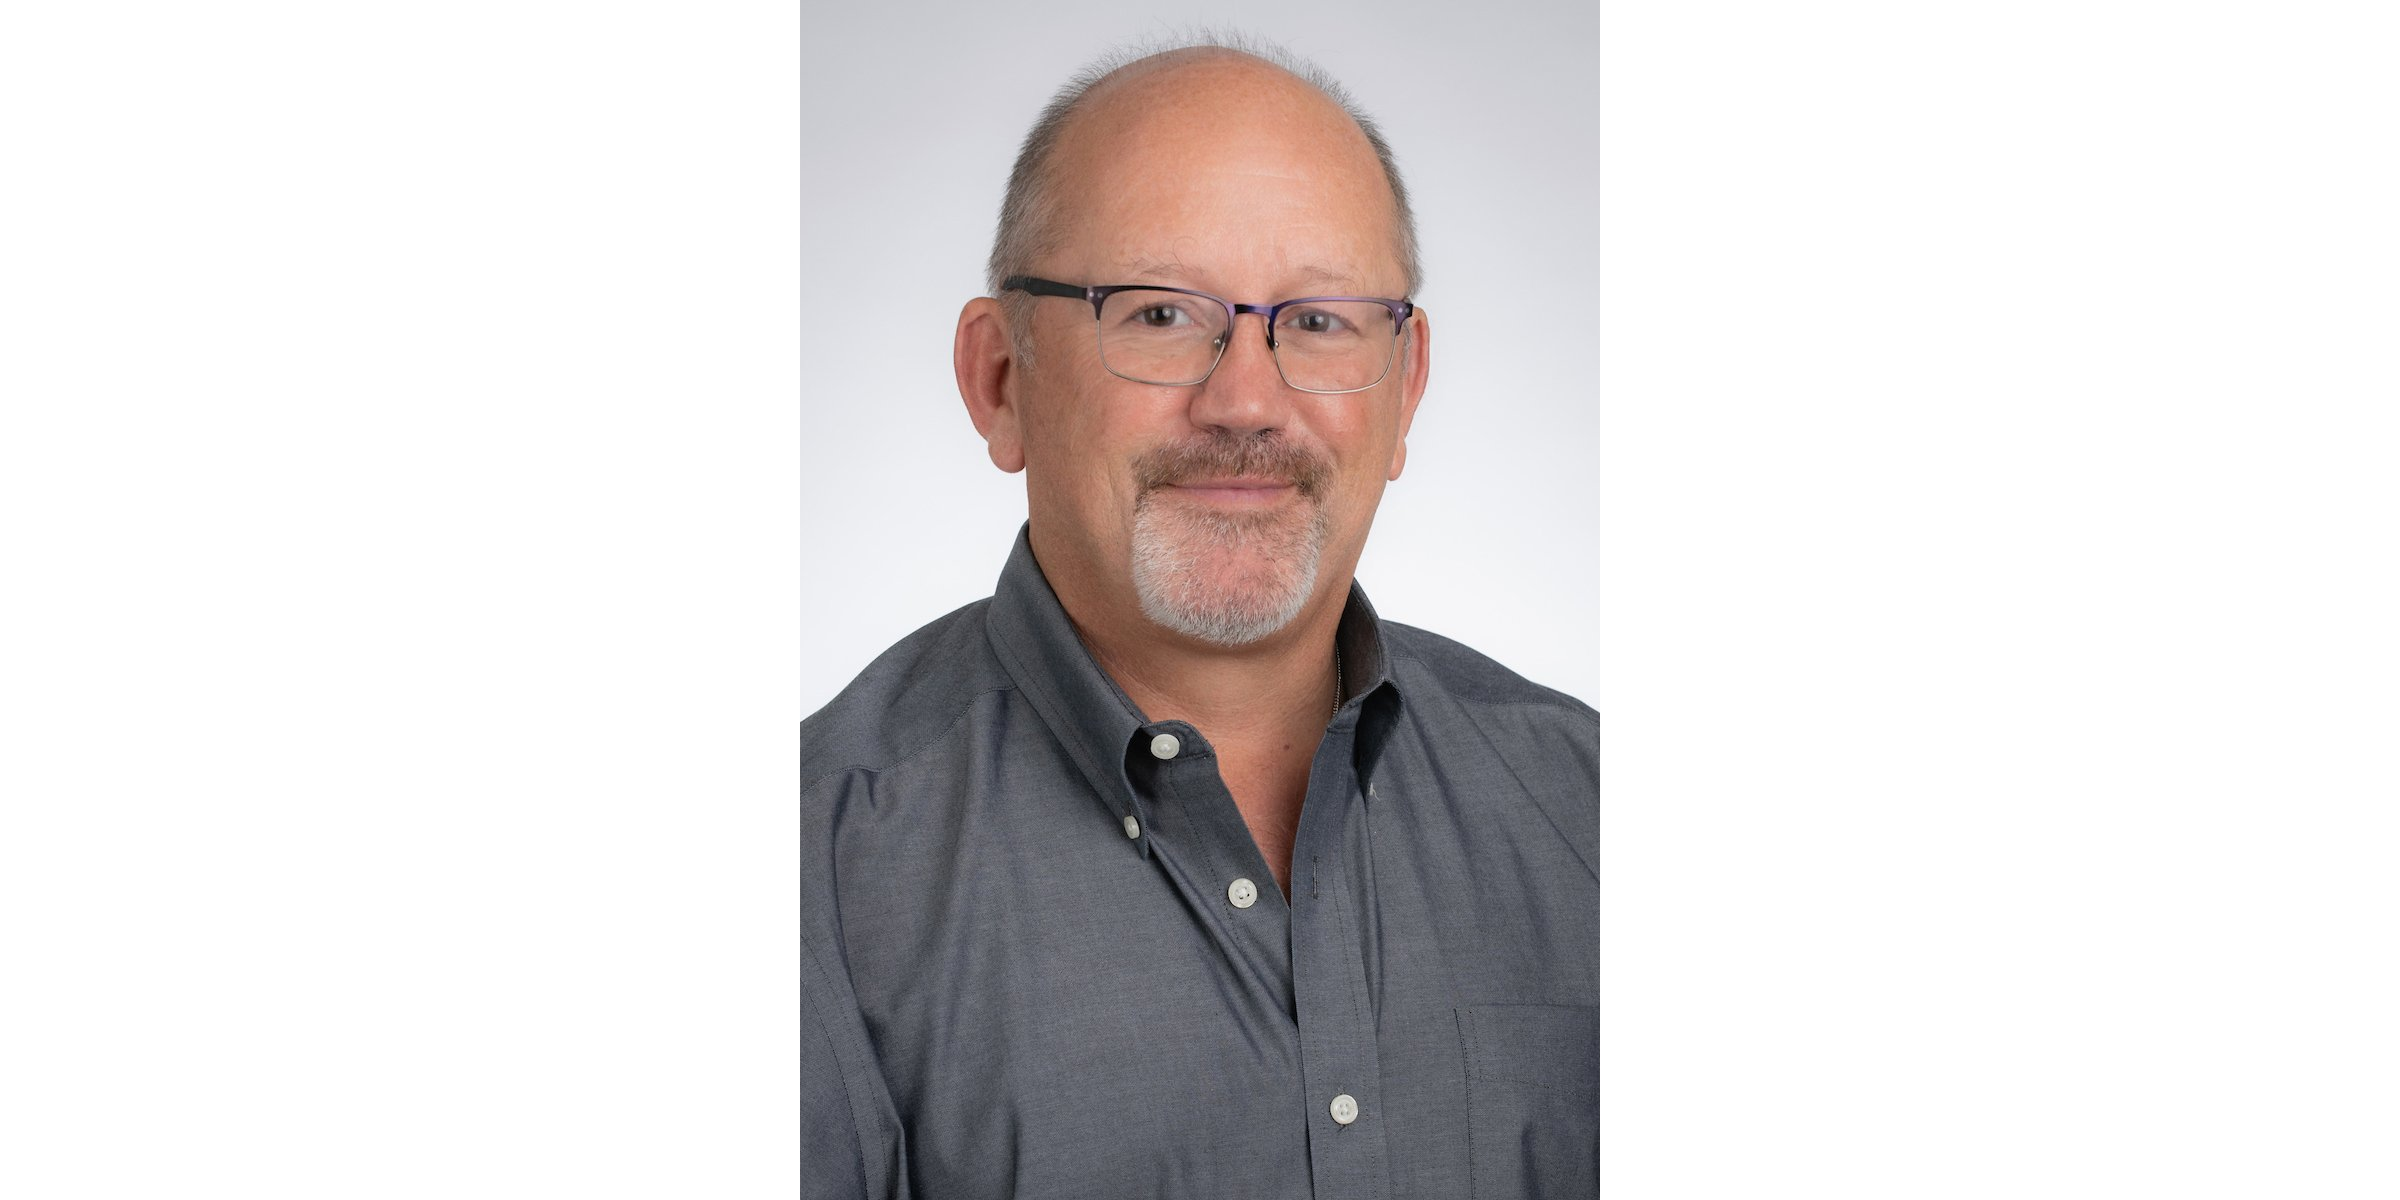 Starlight Software Solutions welcomes Marty Kilmer as Starlight Software Solution's new Chief Operating Officer.